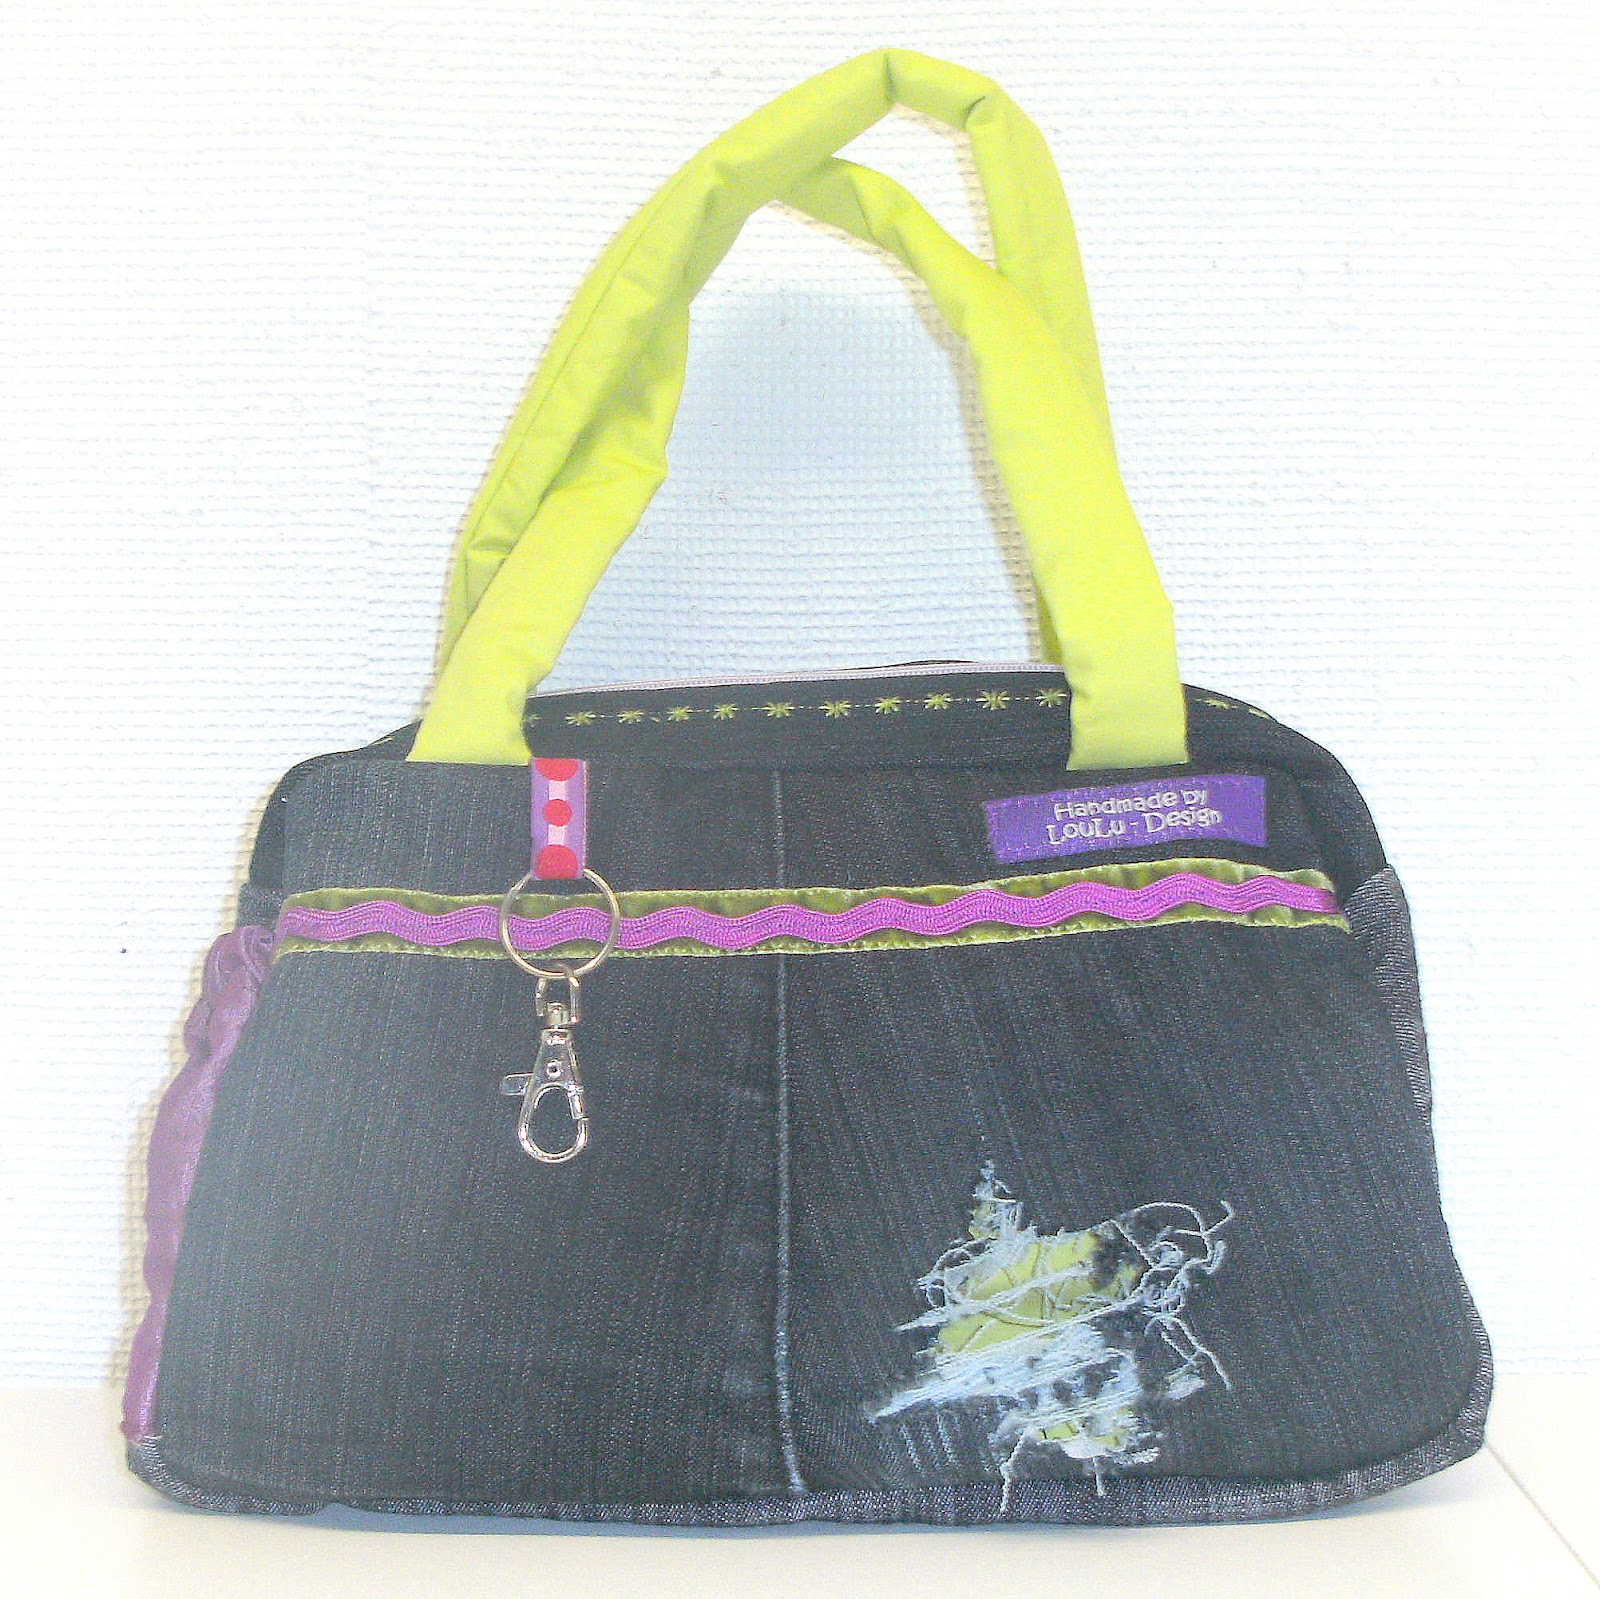 Tasche Recycling Loulu Design Recycle Hippie Tasche